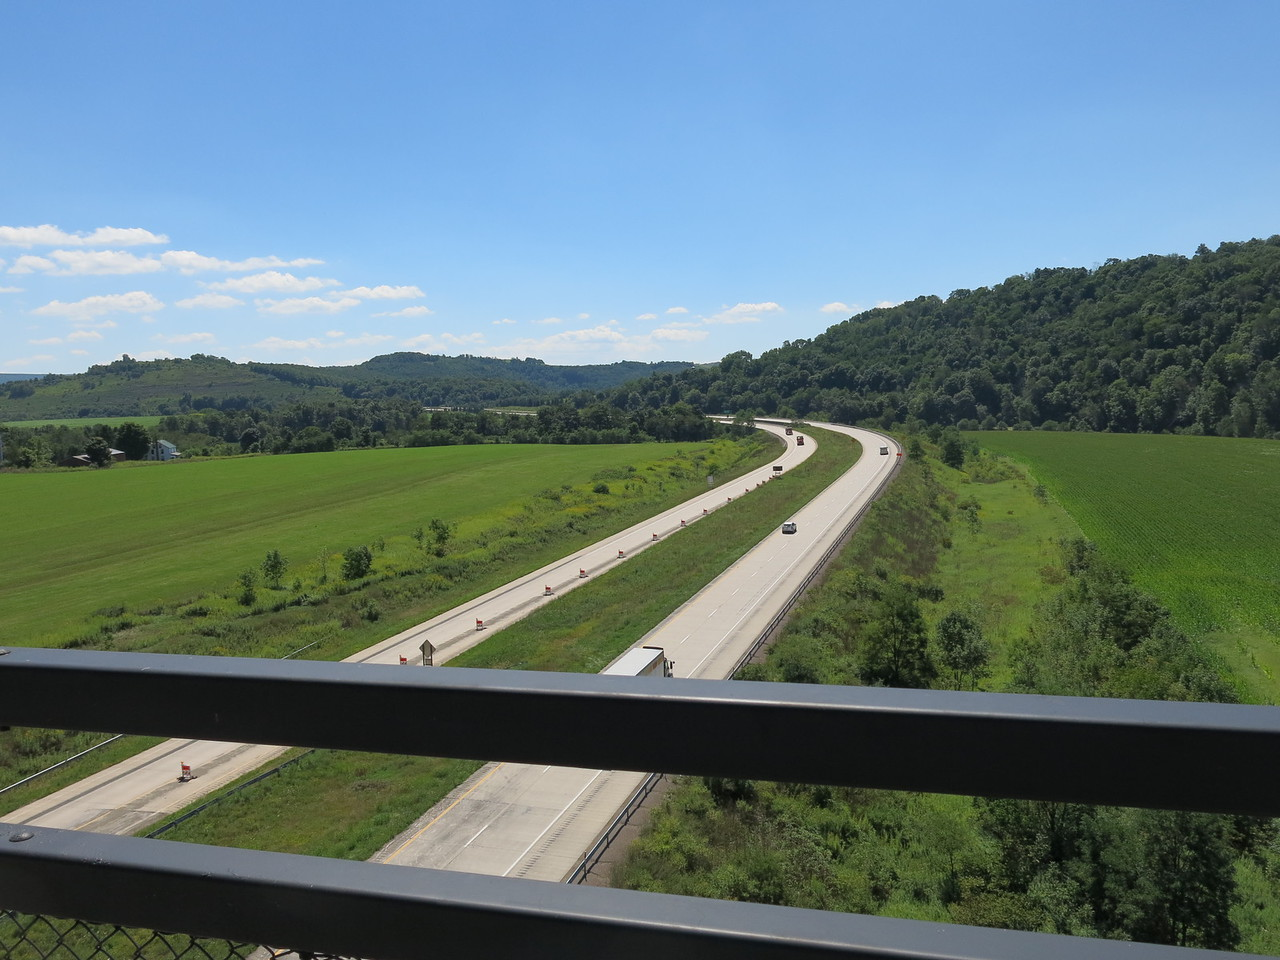 US Highway 219 in four lanes under the Salisbury Viaduct, looking south